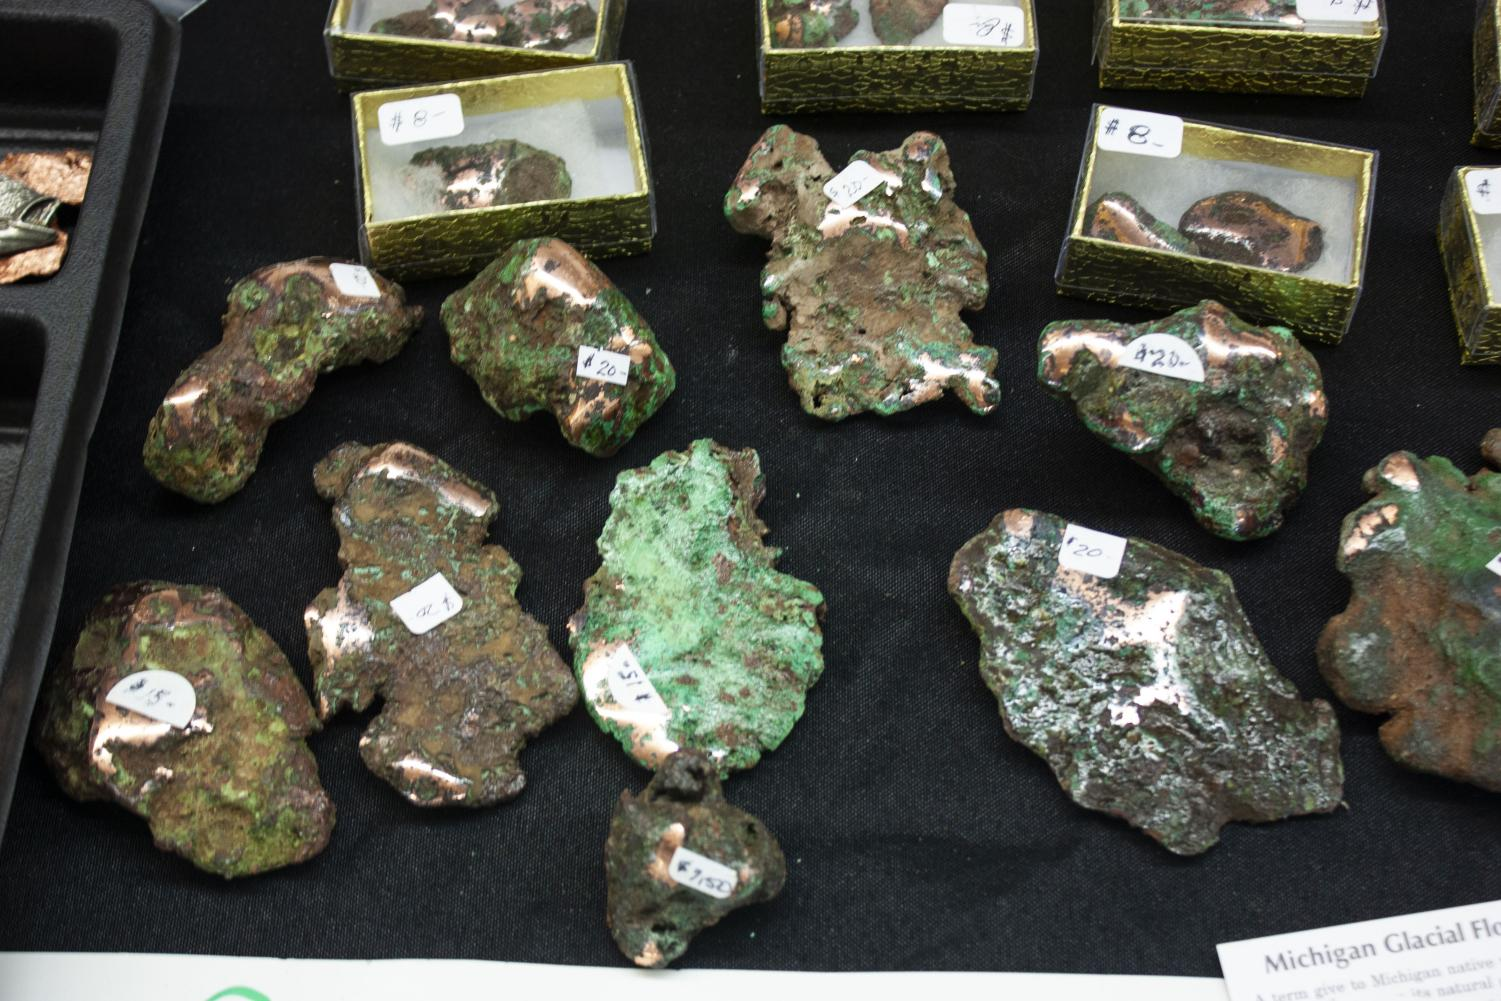 Michigan+Glacial+Float+Copper%2C+a+term+given+to+Michigan+native+vein+copper+that+has+been+removed+from+its+natural+geological+deposits+by+glacial+activity.+These+pieces+of+copper+are+most+recognizable+by+the+green+patina+that+has+developed+on+it+surface.